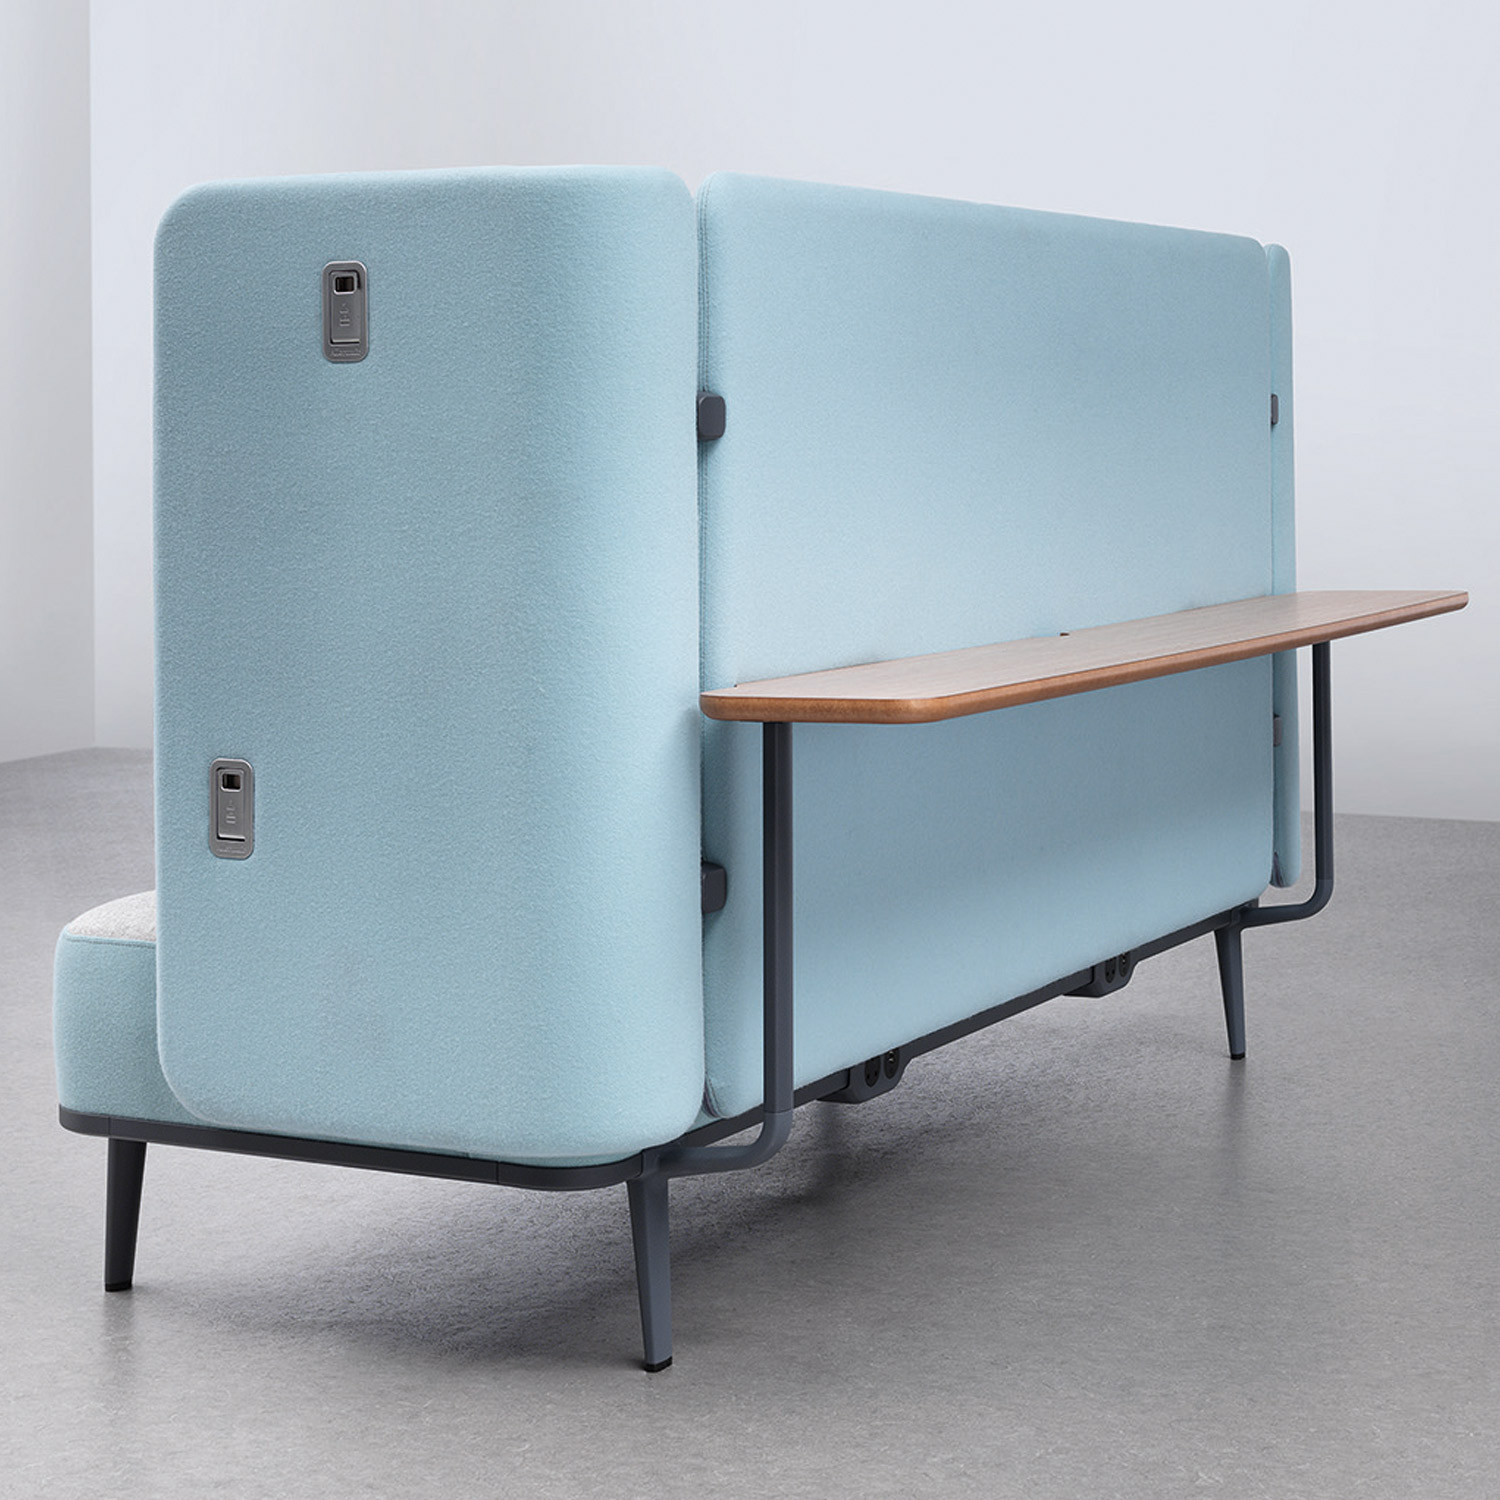 Modular And Flexible Turnstone Bivi Office Furniture ·  Https://www.apresfurniture.co.uk/media/catalog/